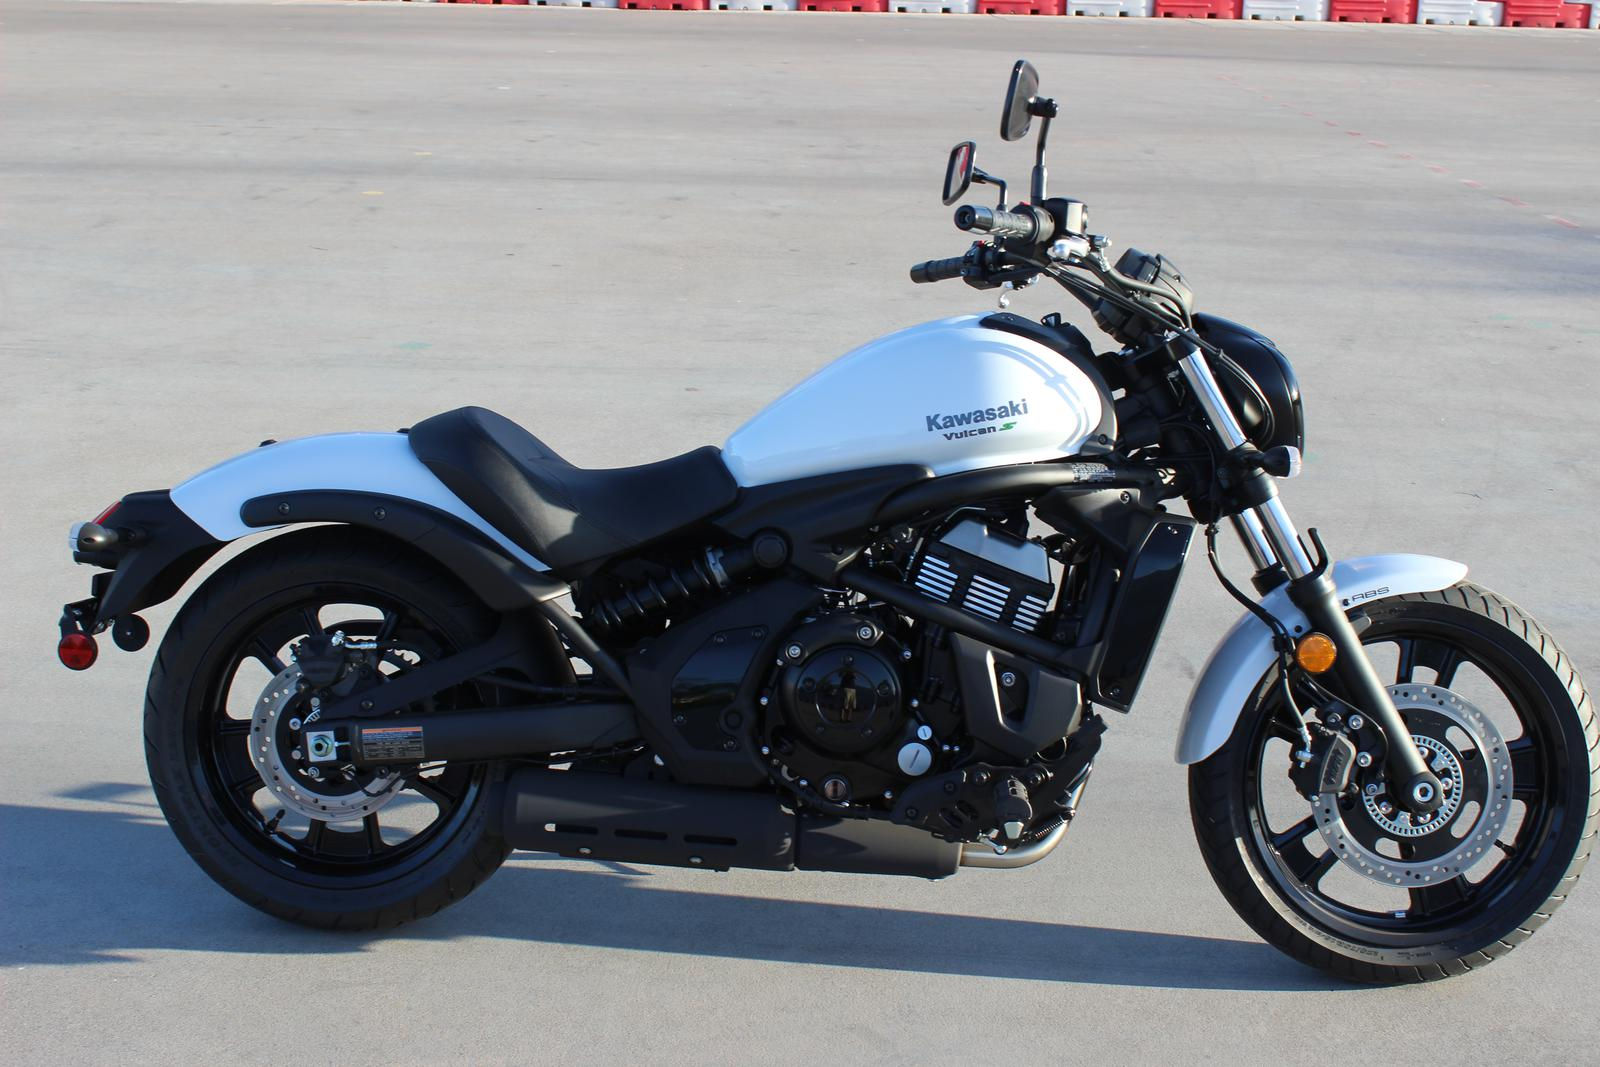 2018 Kawasaki Vulcan S ABS for sale in Scottsdale, AZ | GO AZ ...